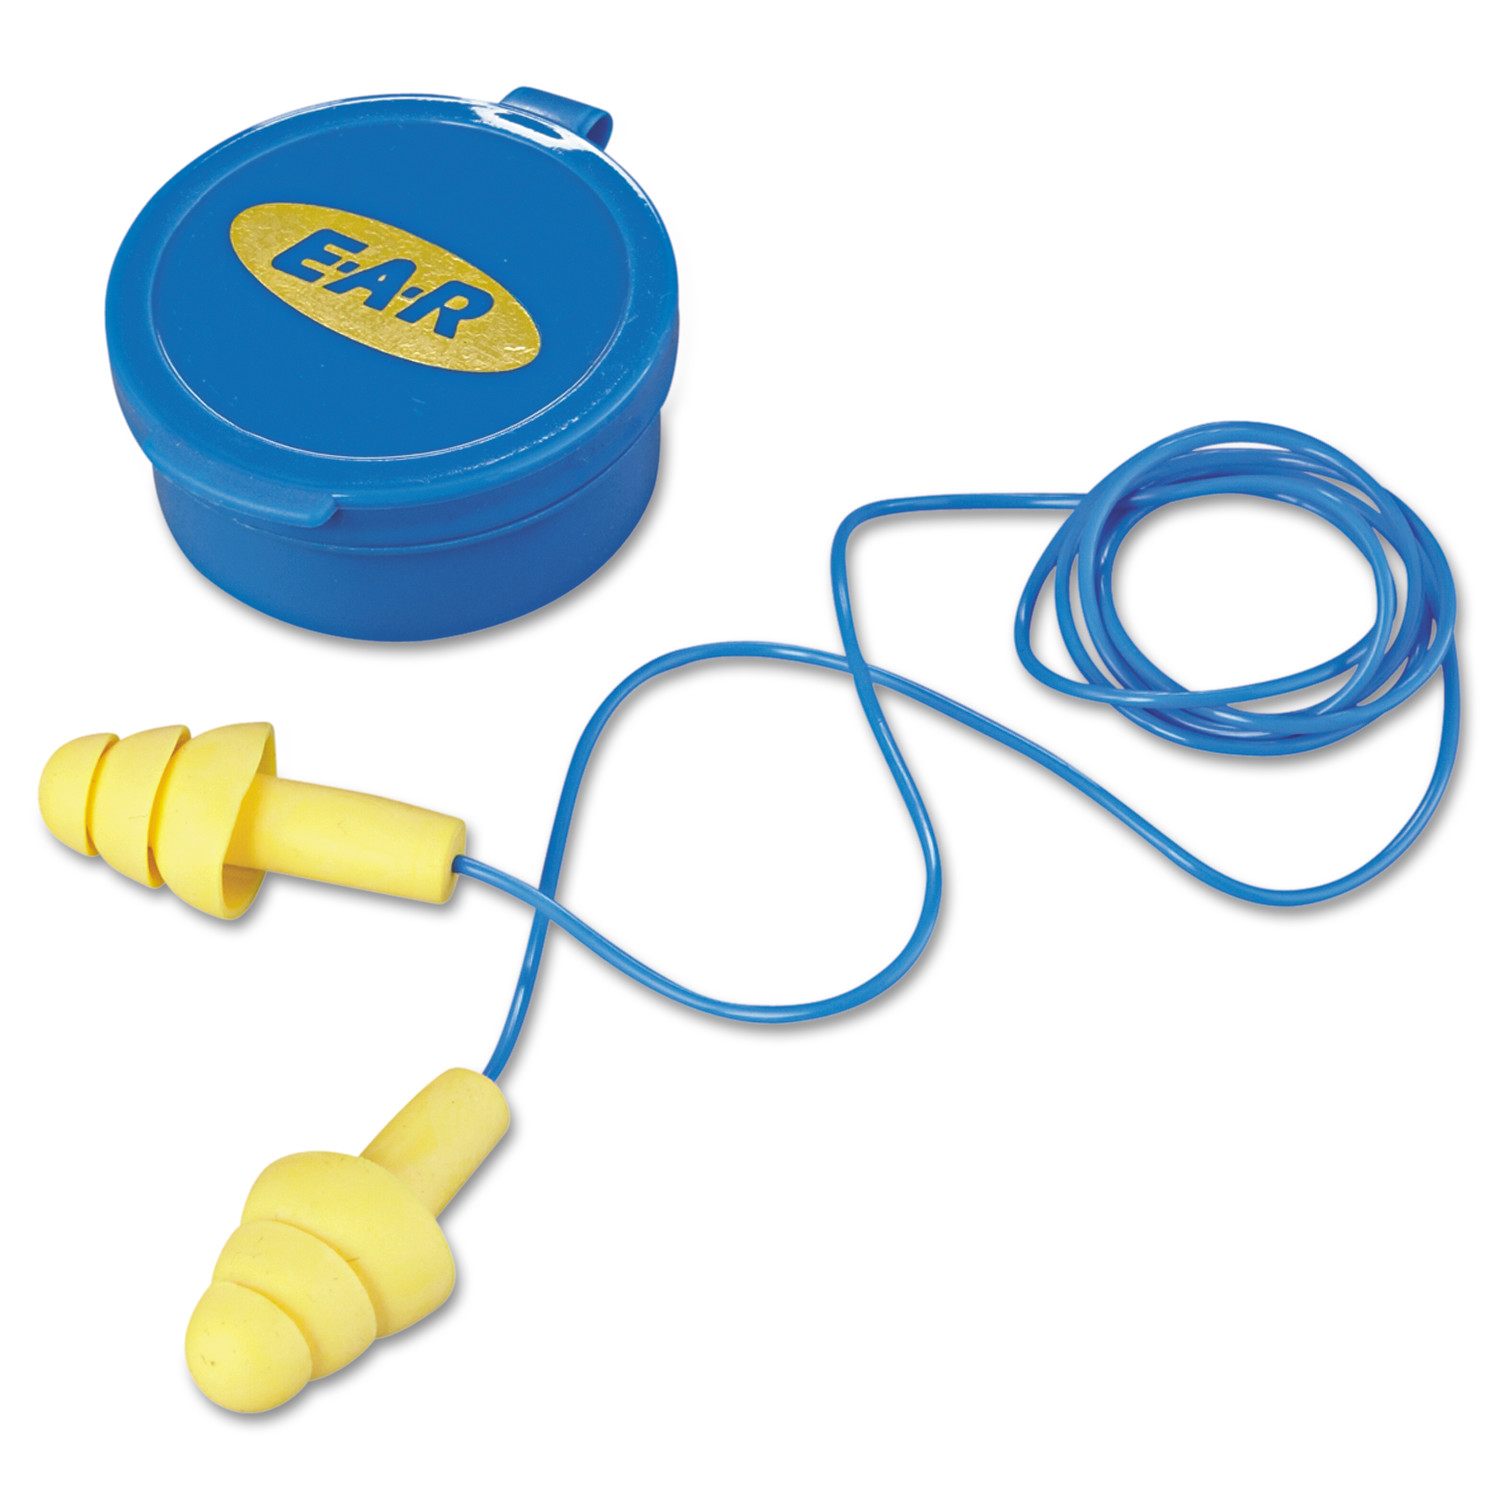 3M E·A·R UltraFit Multi-Use Earplugs, Corded, 25NRR, Yellow/Blue, 50 Pairs